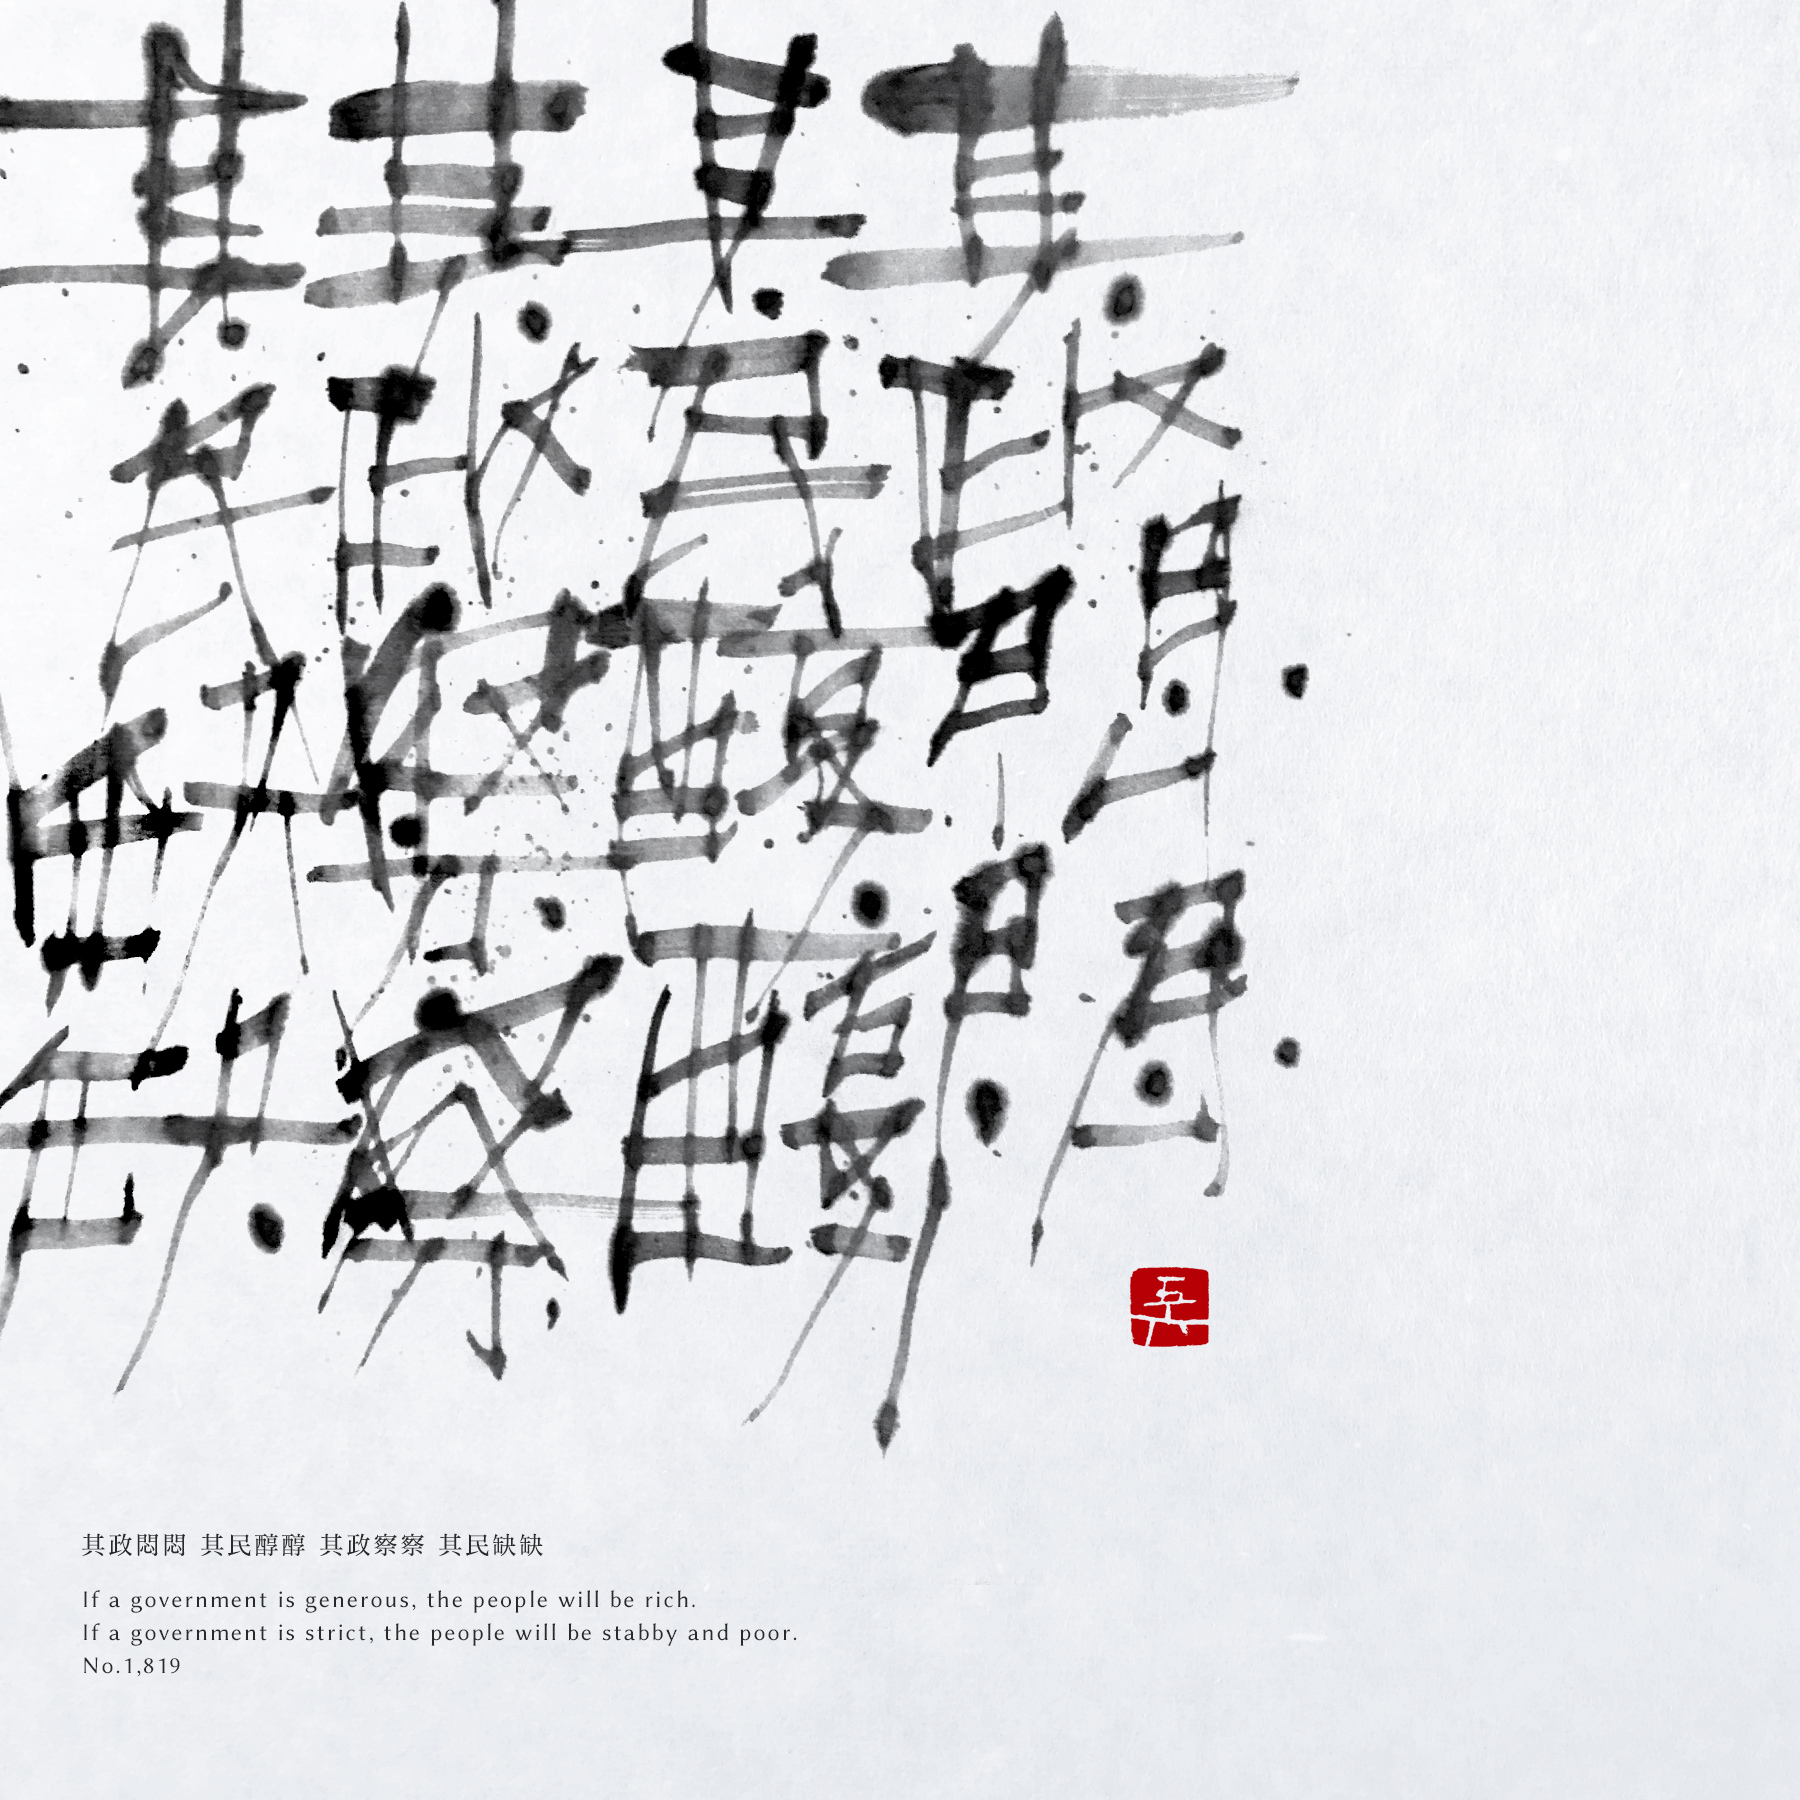 其政悶悶 其民醇醇 | if a goverment is generous 書道作品 japaneseart japanese calligraphy 書家 田川悟郎 Goroh Tagawa